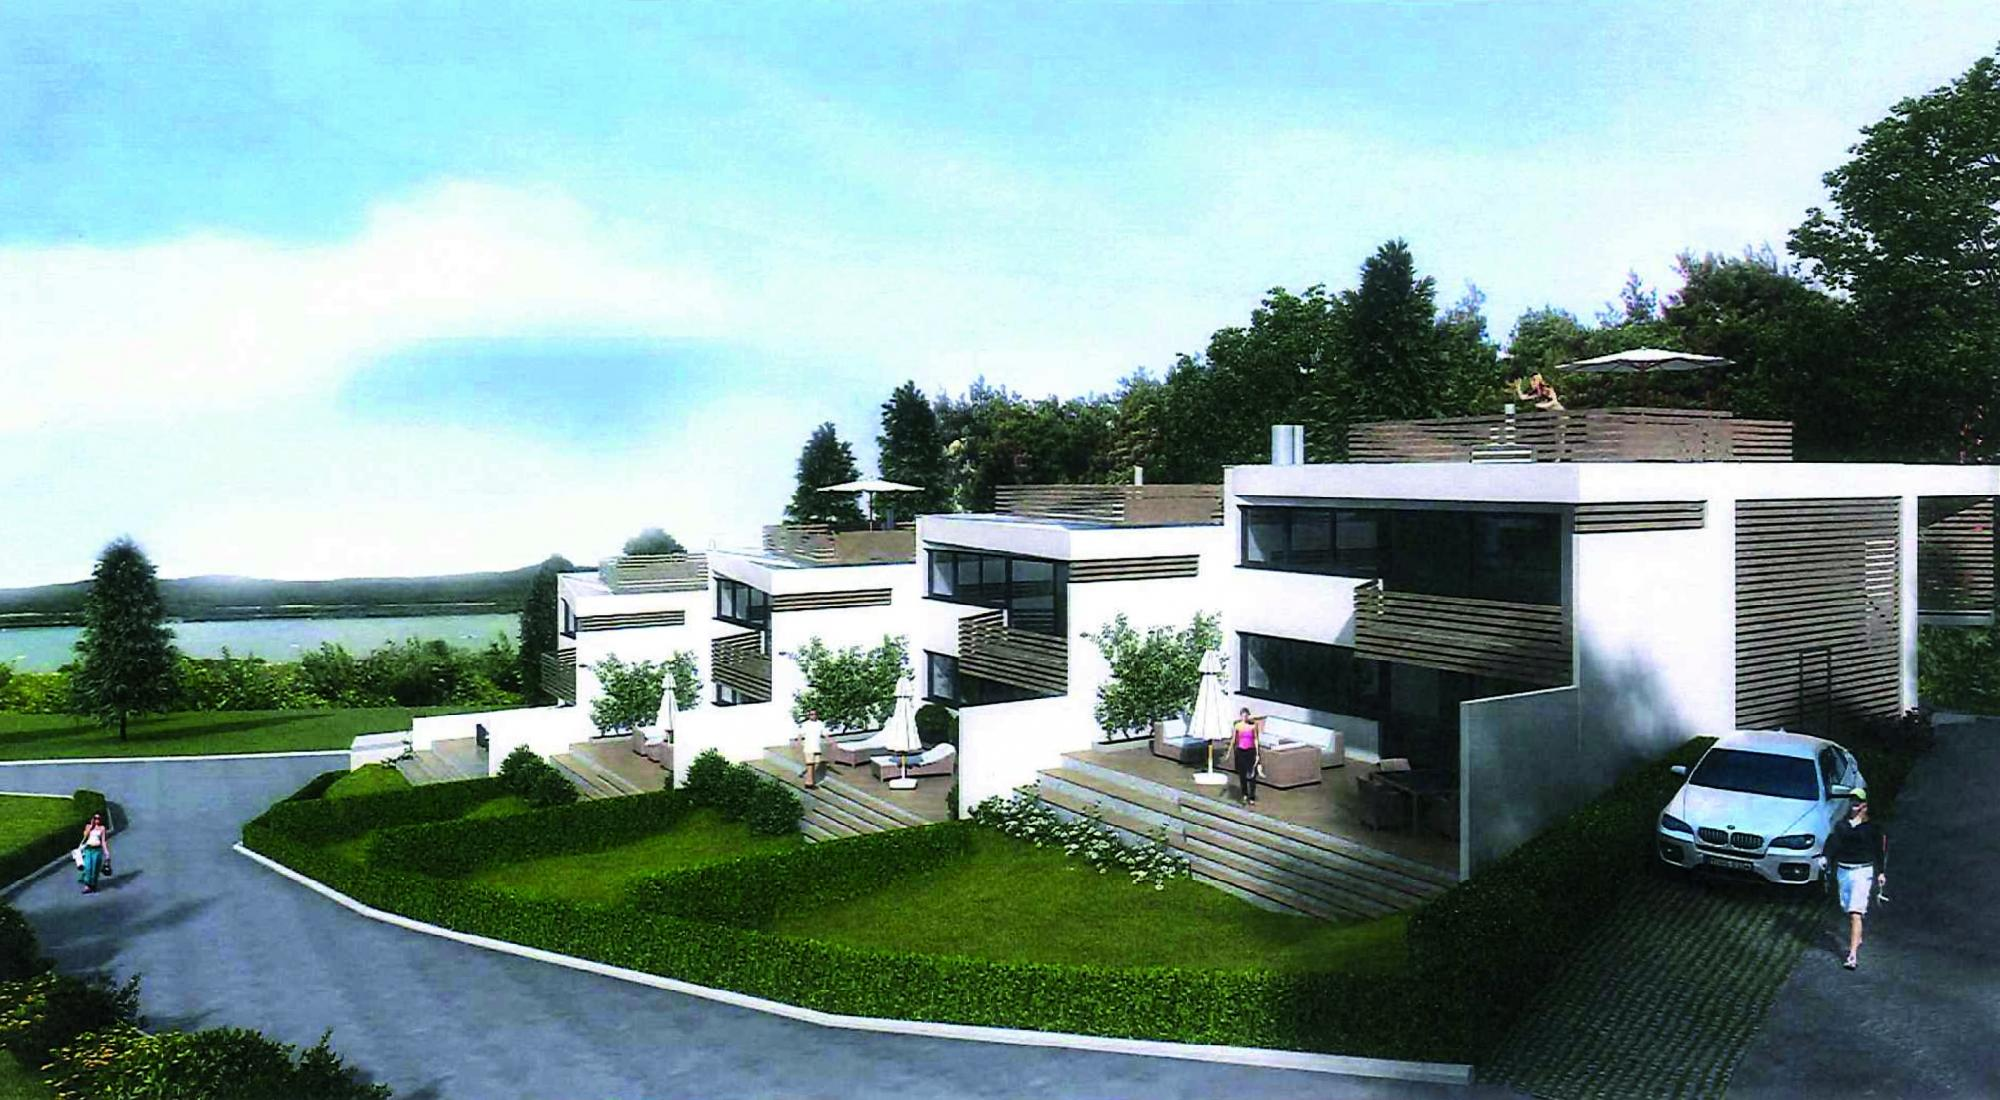 Lakeside Residences – Stylish Living on the Woerthersee for Sale - Carinthia - Austria